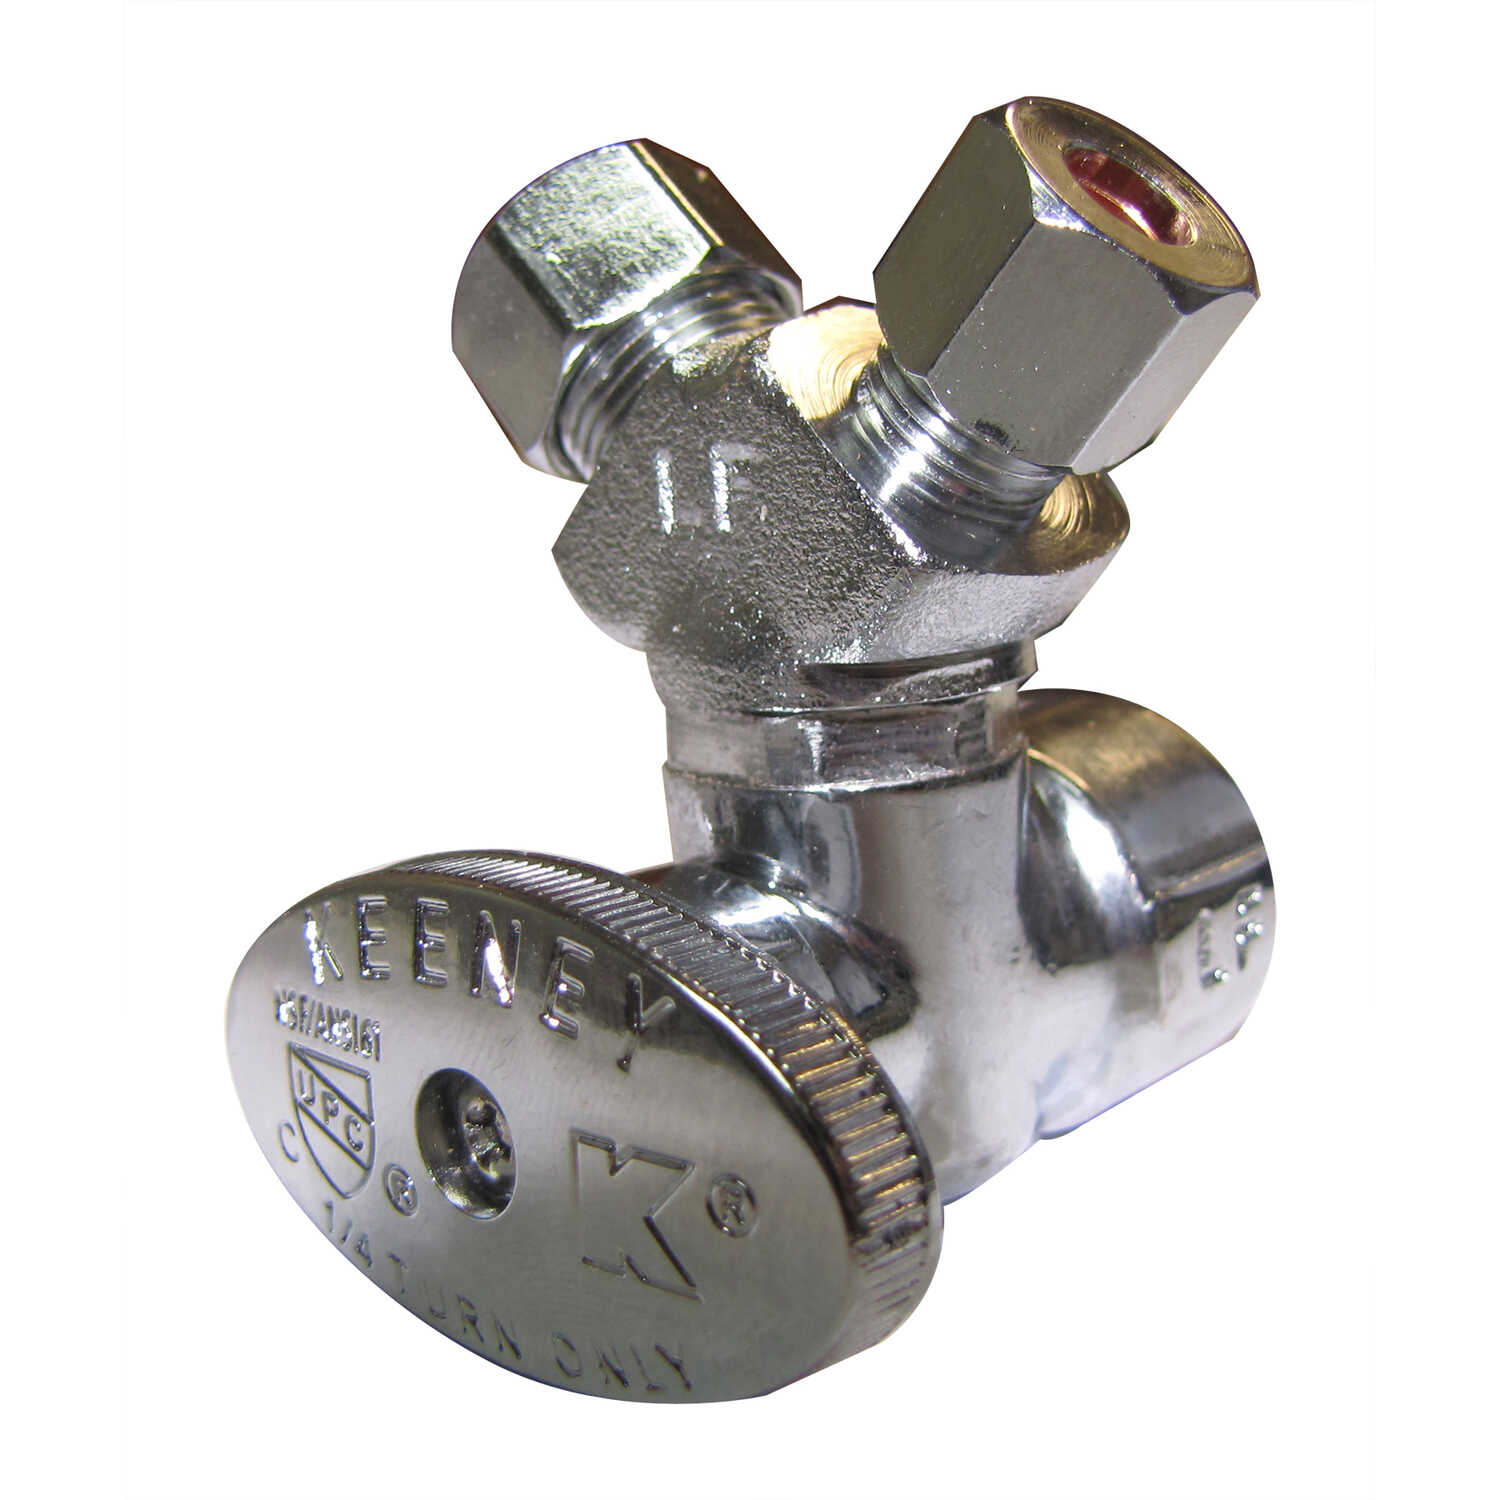 Plumb Pak  1/2 in. Dia. x 3/8 in. Dia. Ball  Brass  3-Way Valve